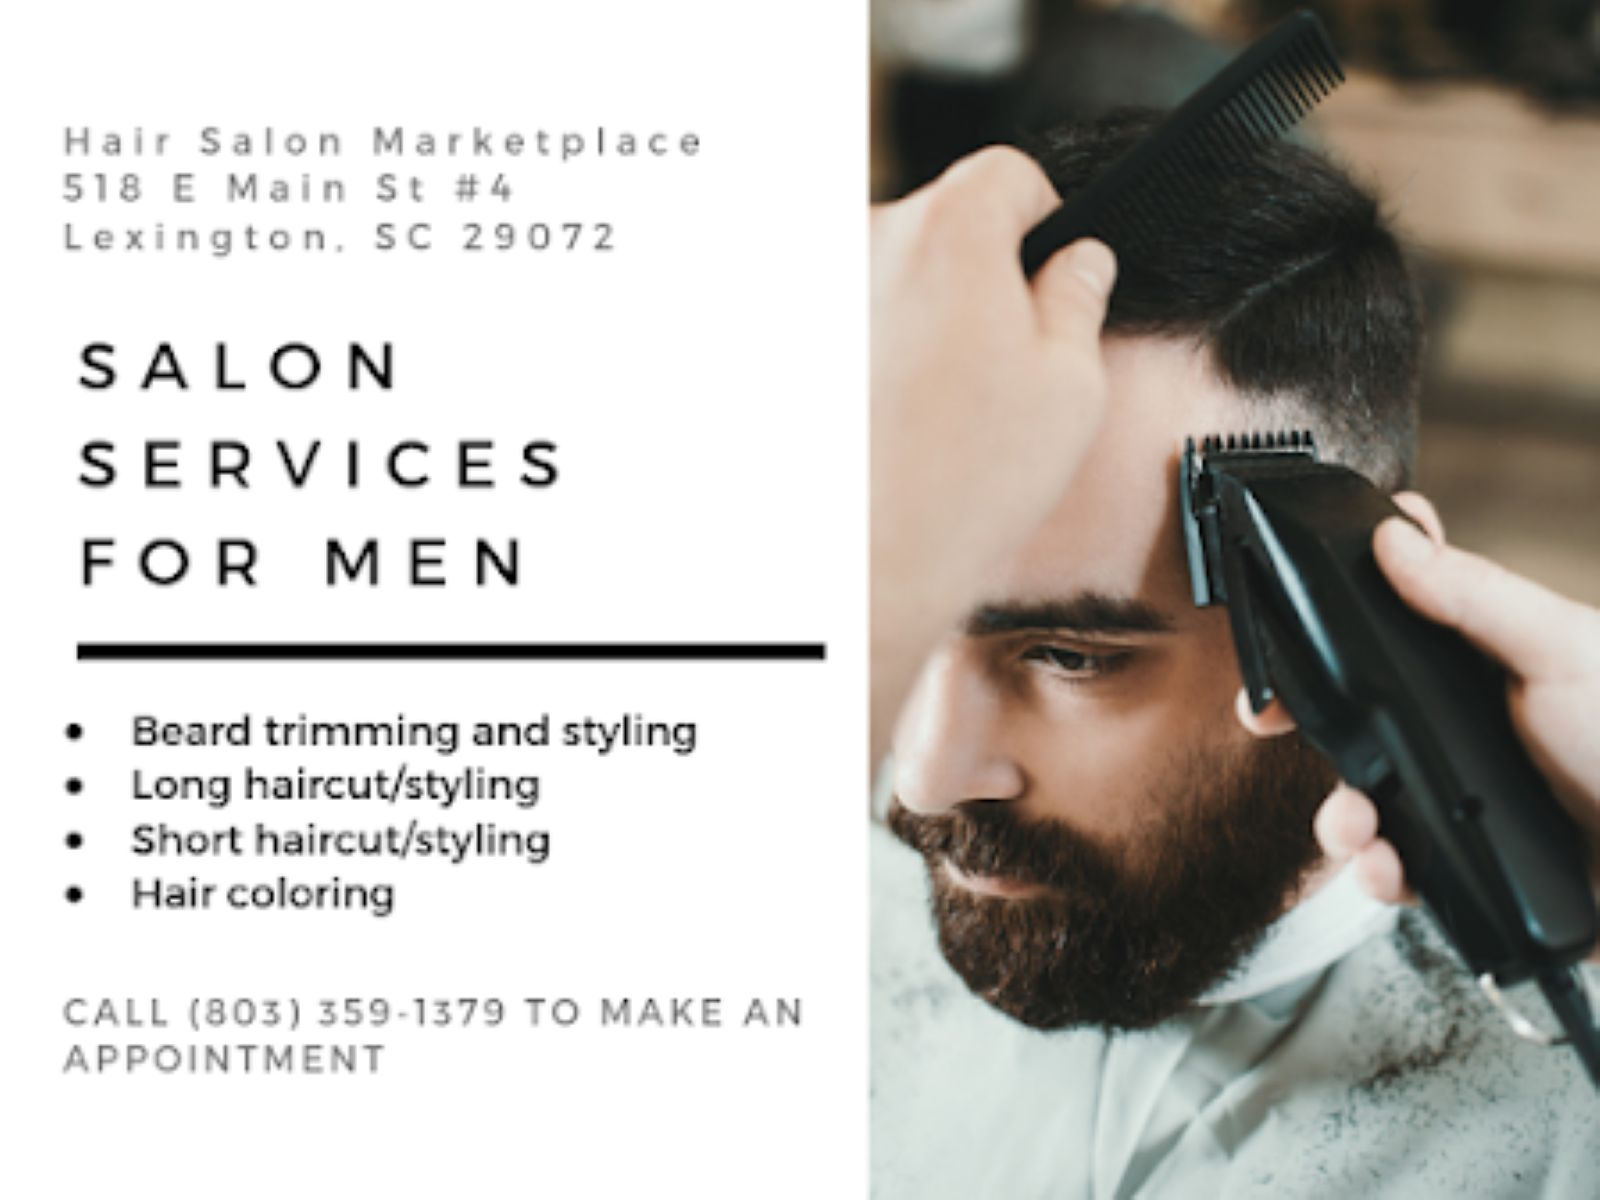 Hair Salon Marketplace